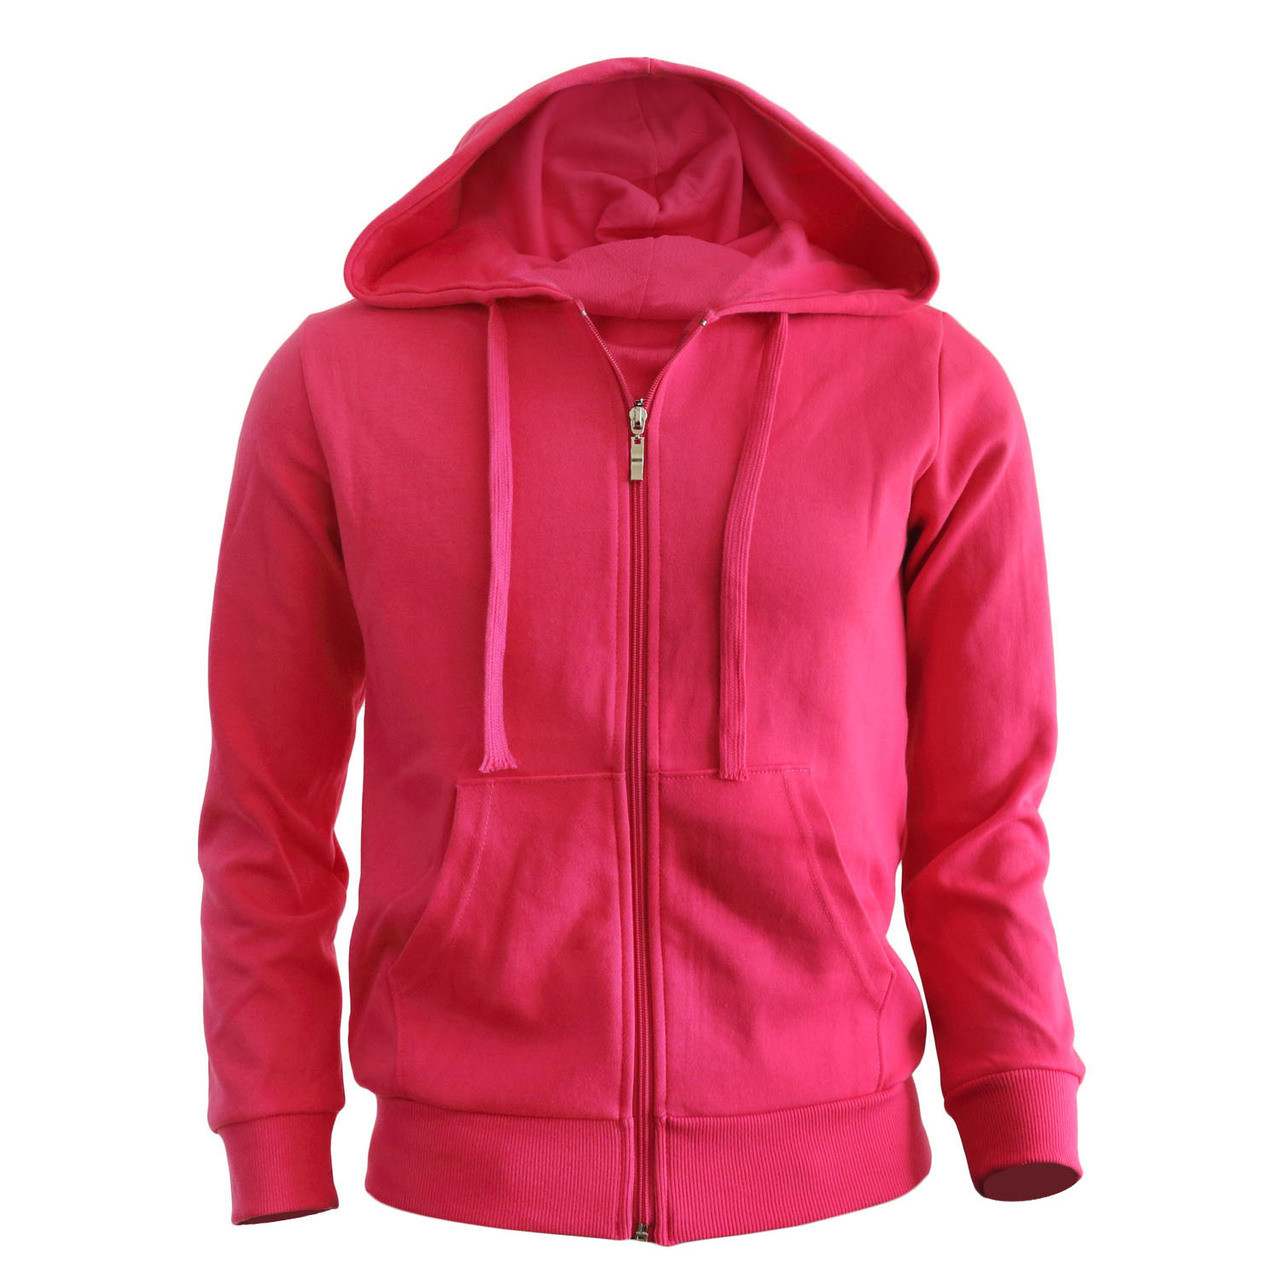 Pink Hoodie T Shirt For Unisex Cotton Hoodie T Shirt Men